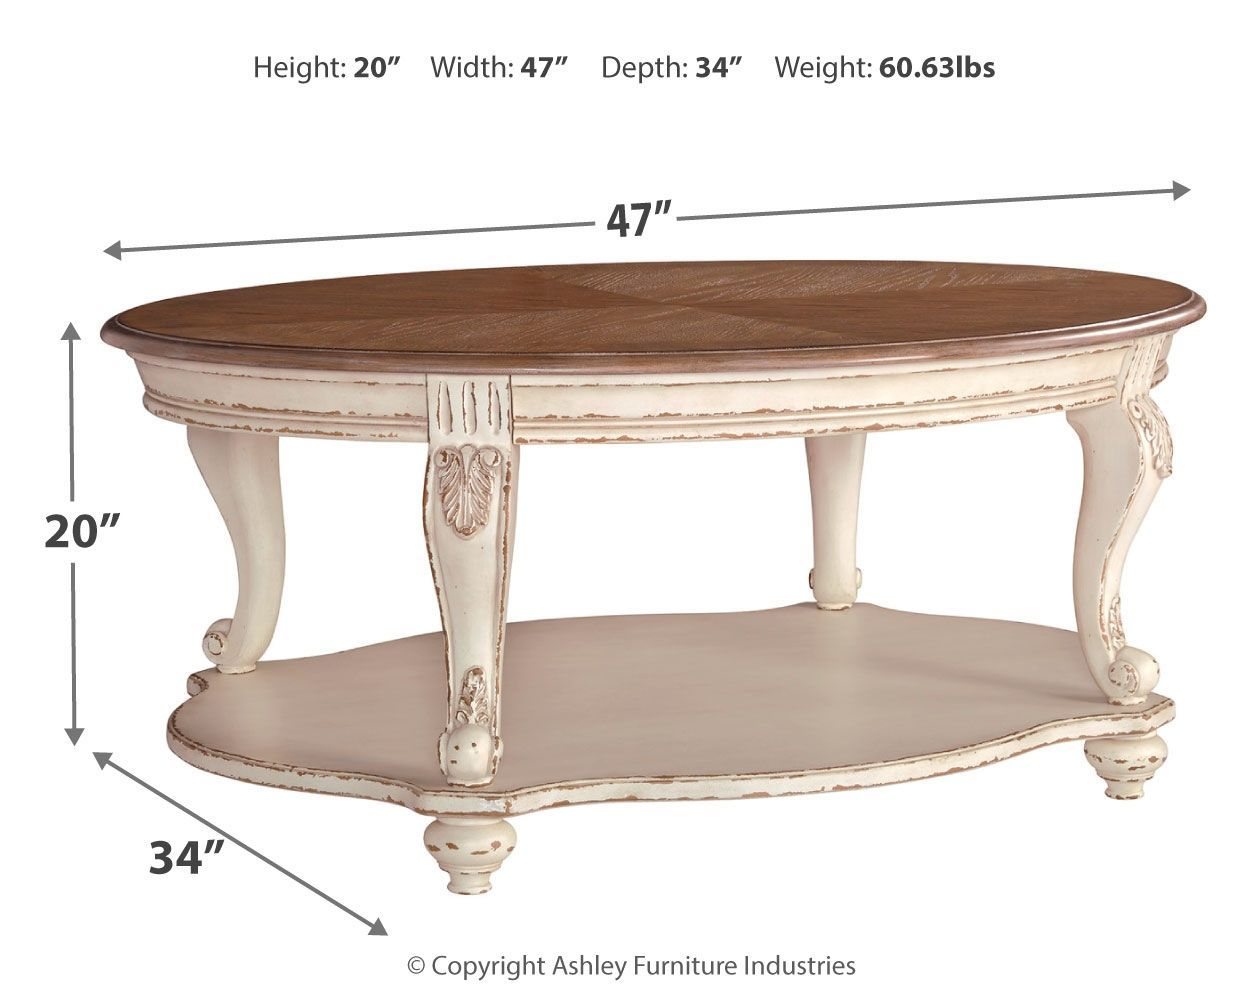 Realyn White Brown Oval Cocktail Table In 2021 Coffee Table Oval Coffee Tables Table [ 1000 x 1250 Pixel ]